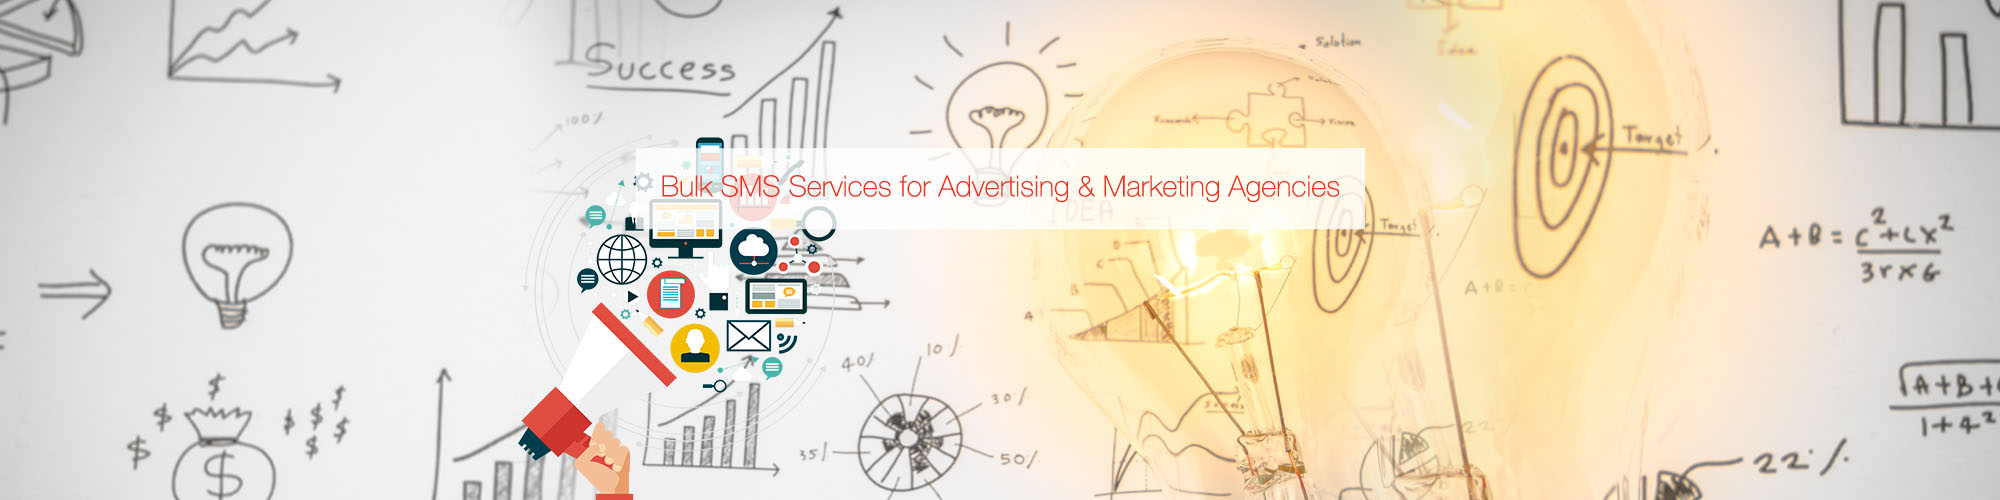 SMSGATEWAYHUB advertisement marketing agencies